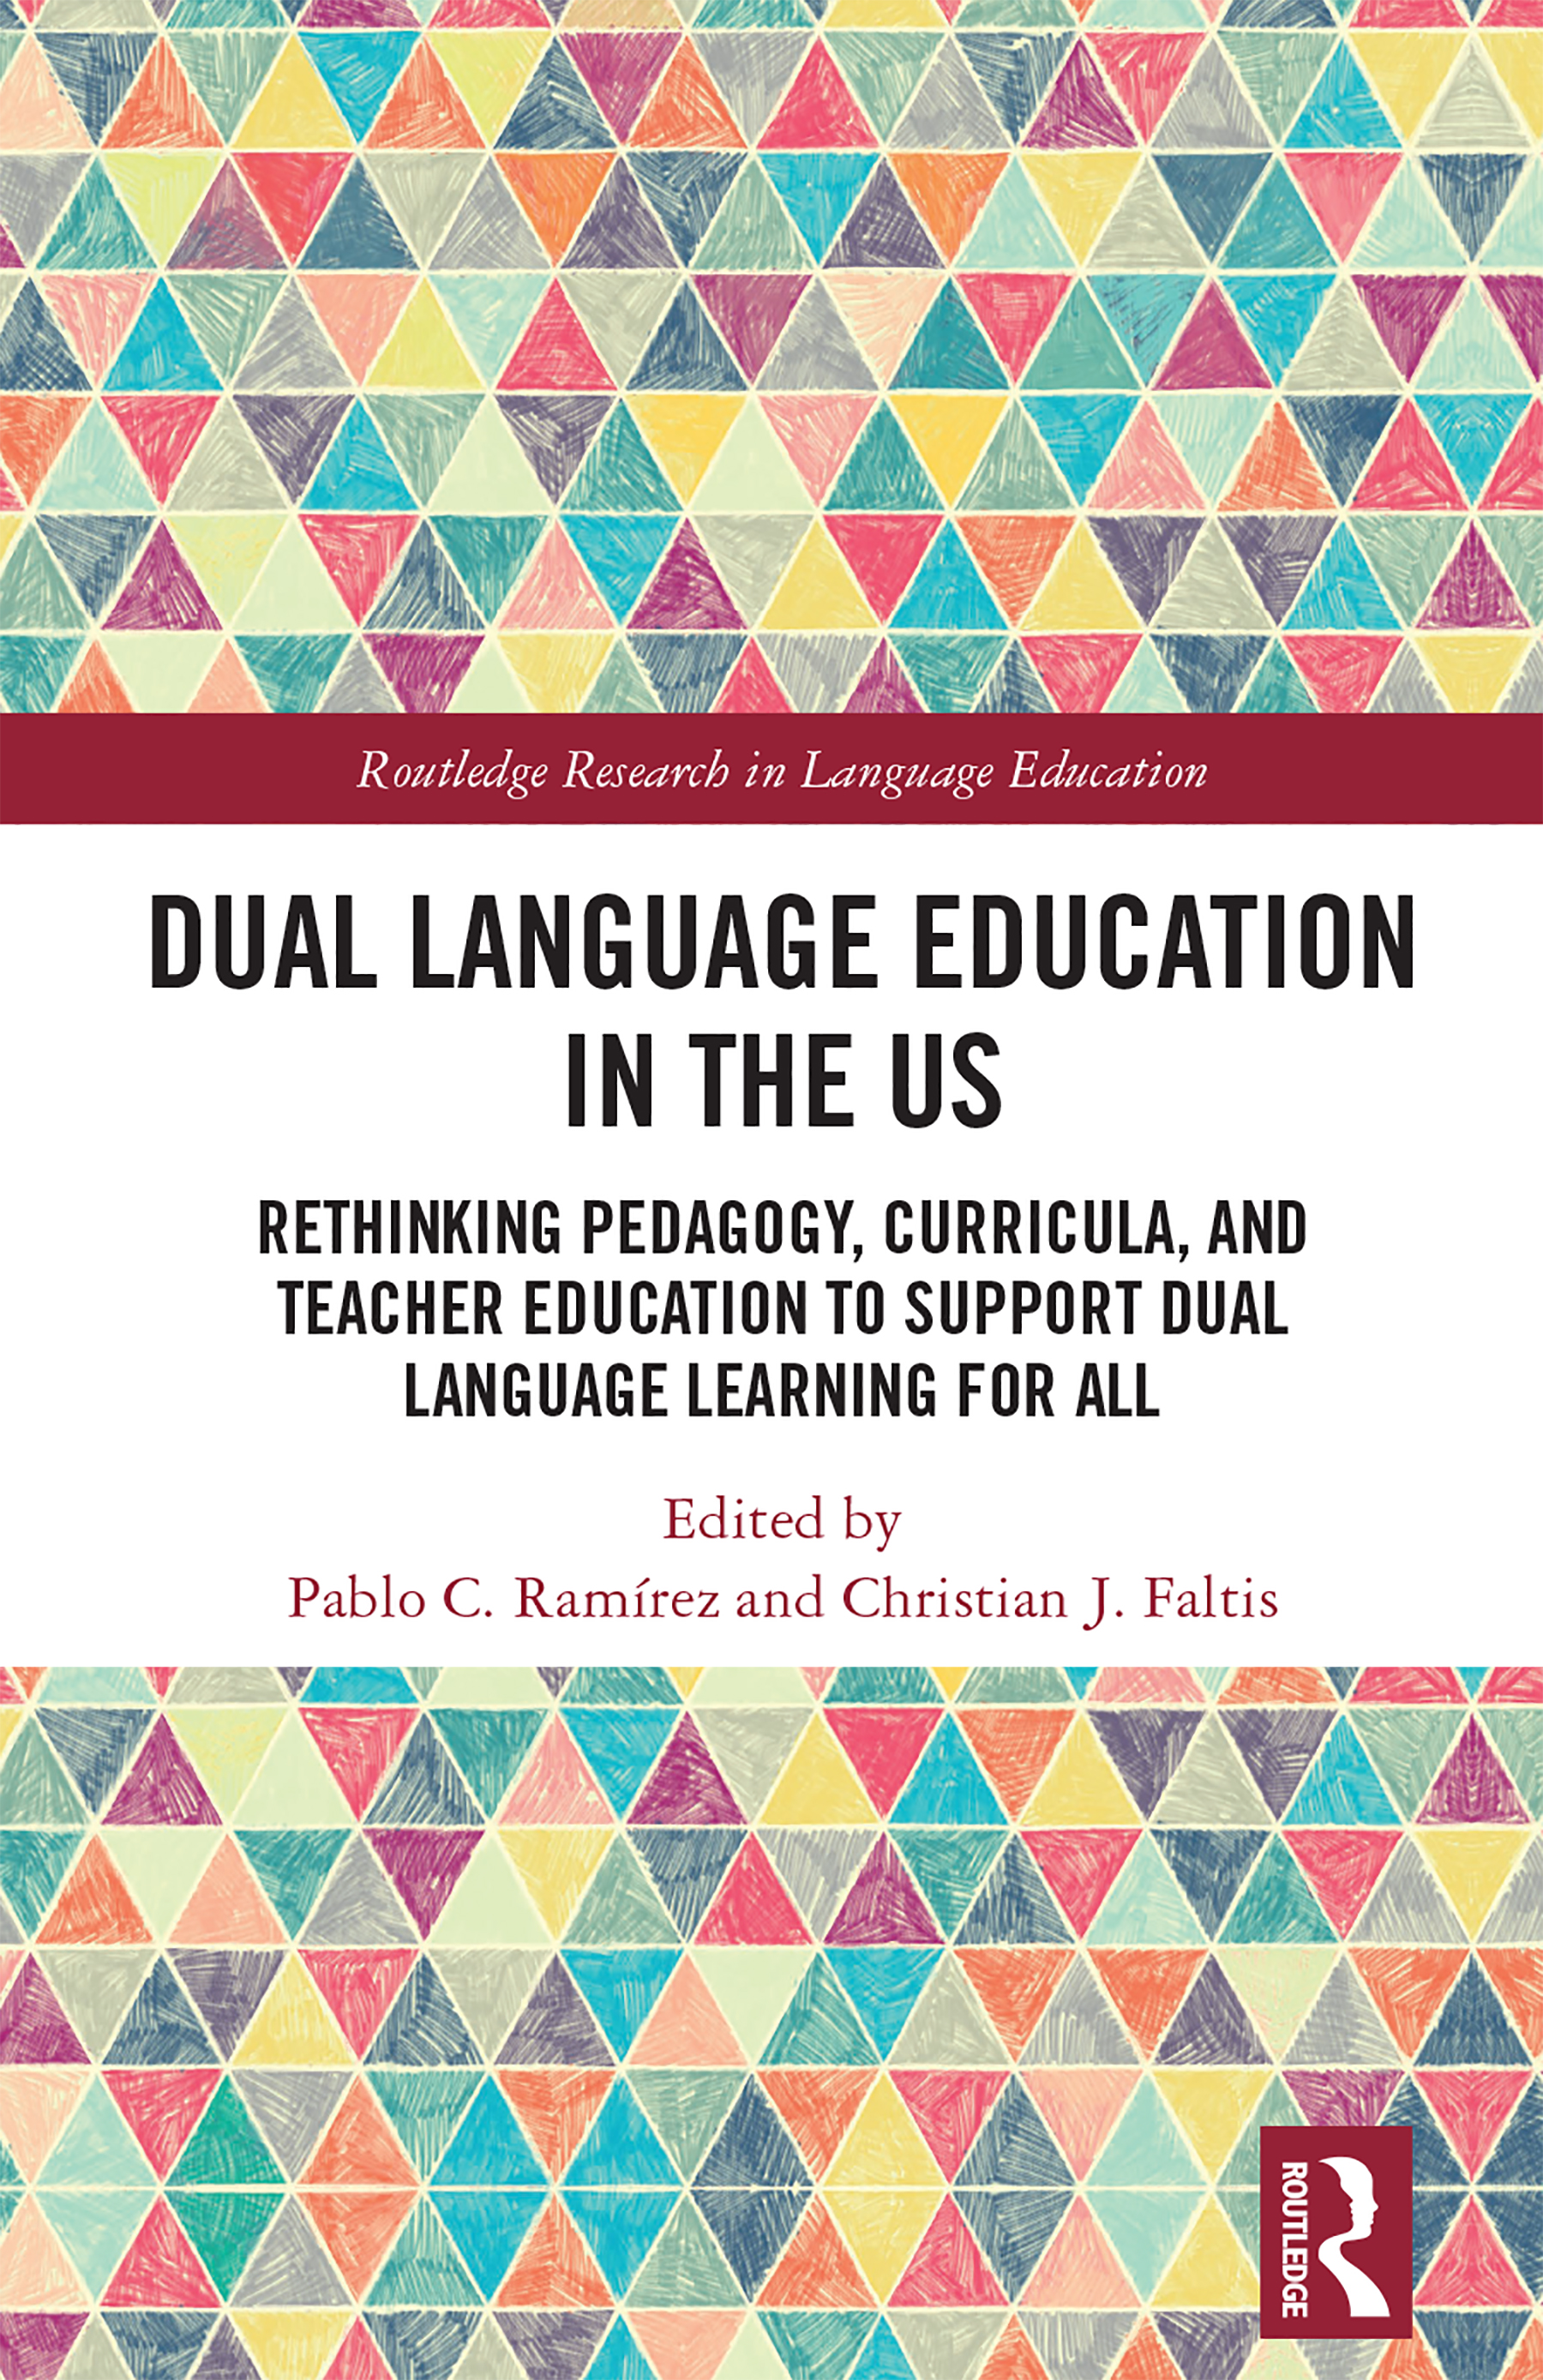 Dual Language Education in the US: Rethinking Pedagogy, Curricula, and Teacher Education to Support Dual Language Learning for All, 1st Edition (Hardback) book cover